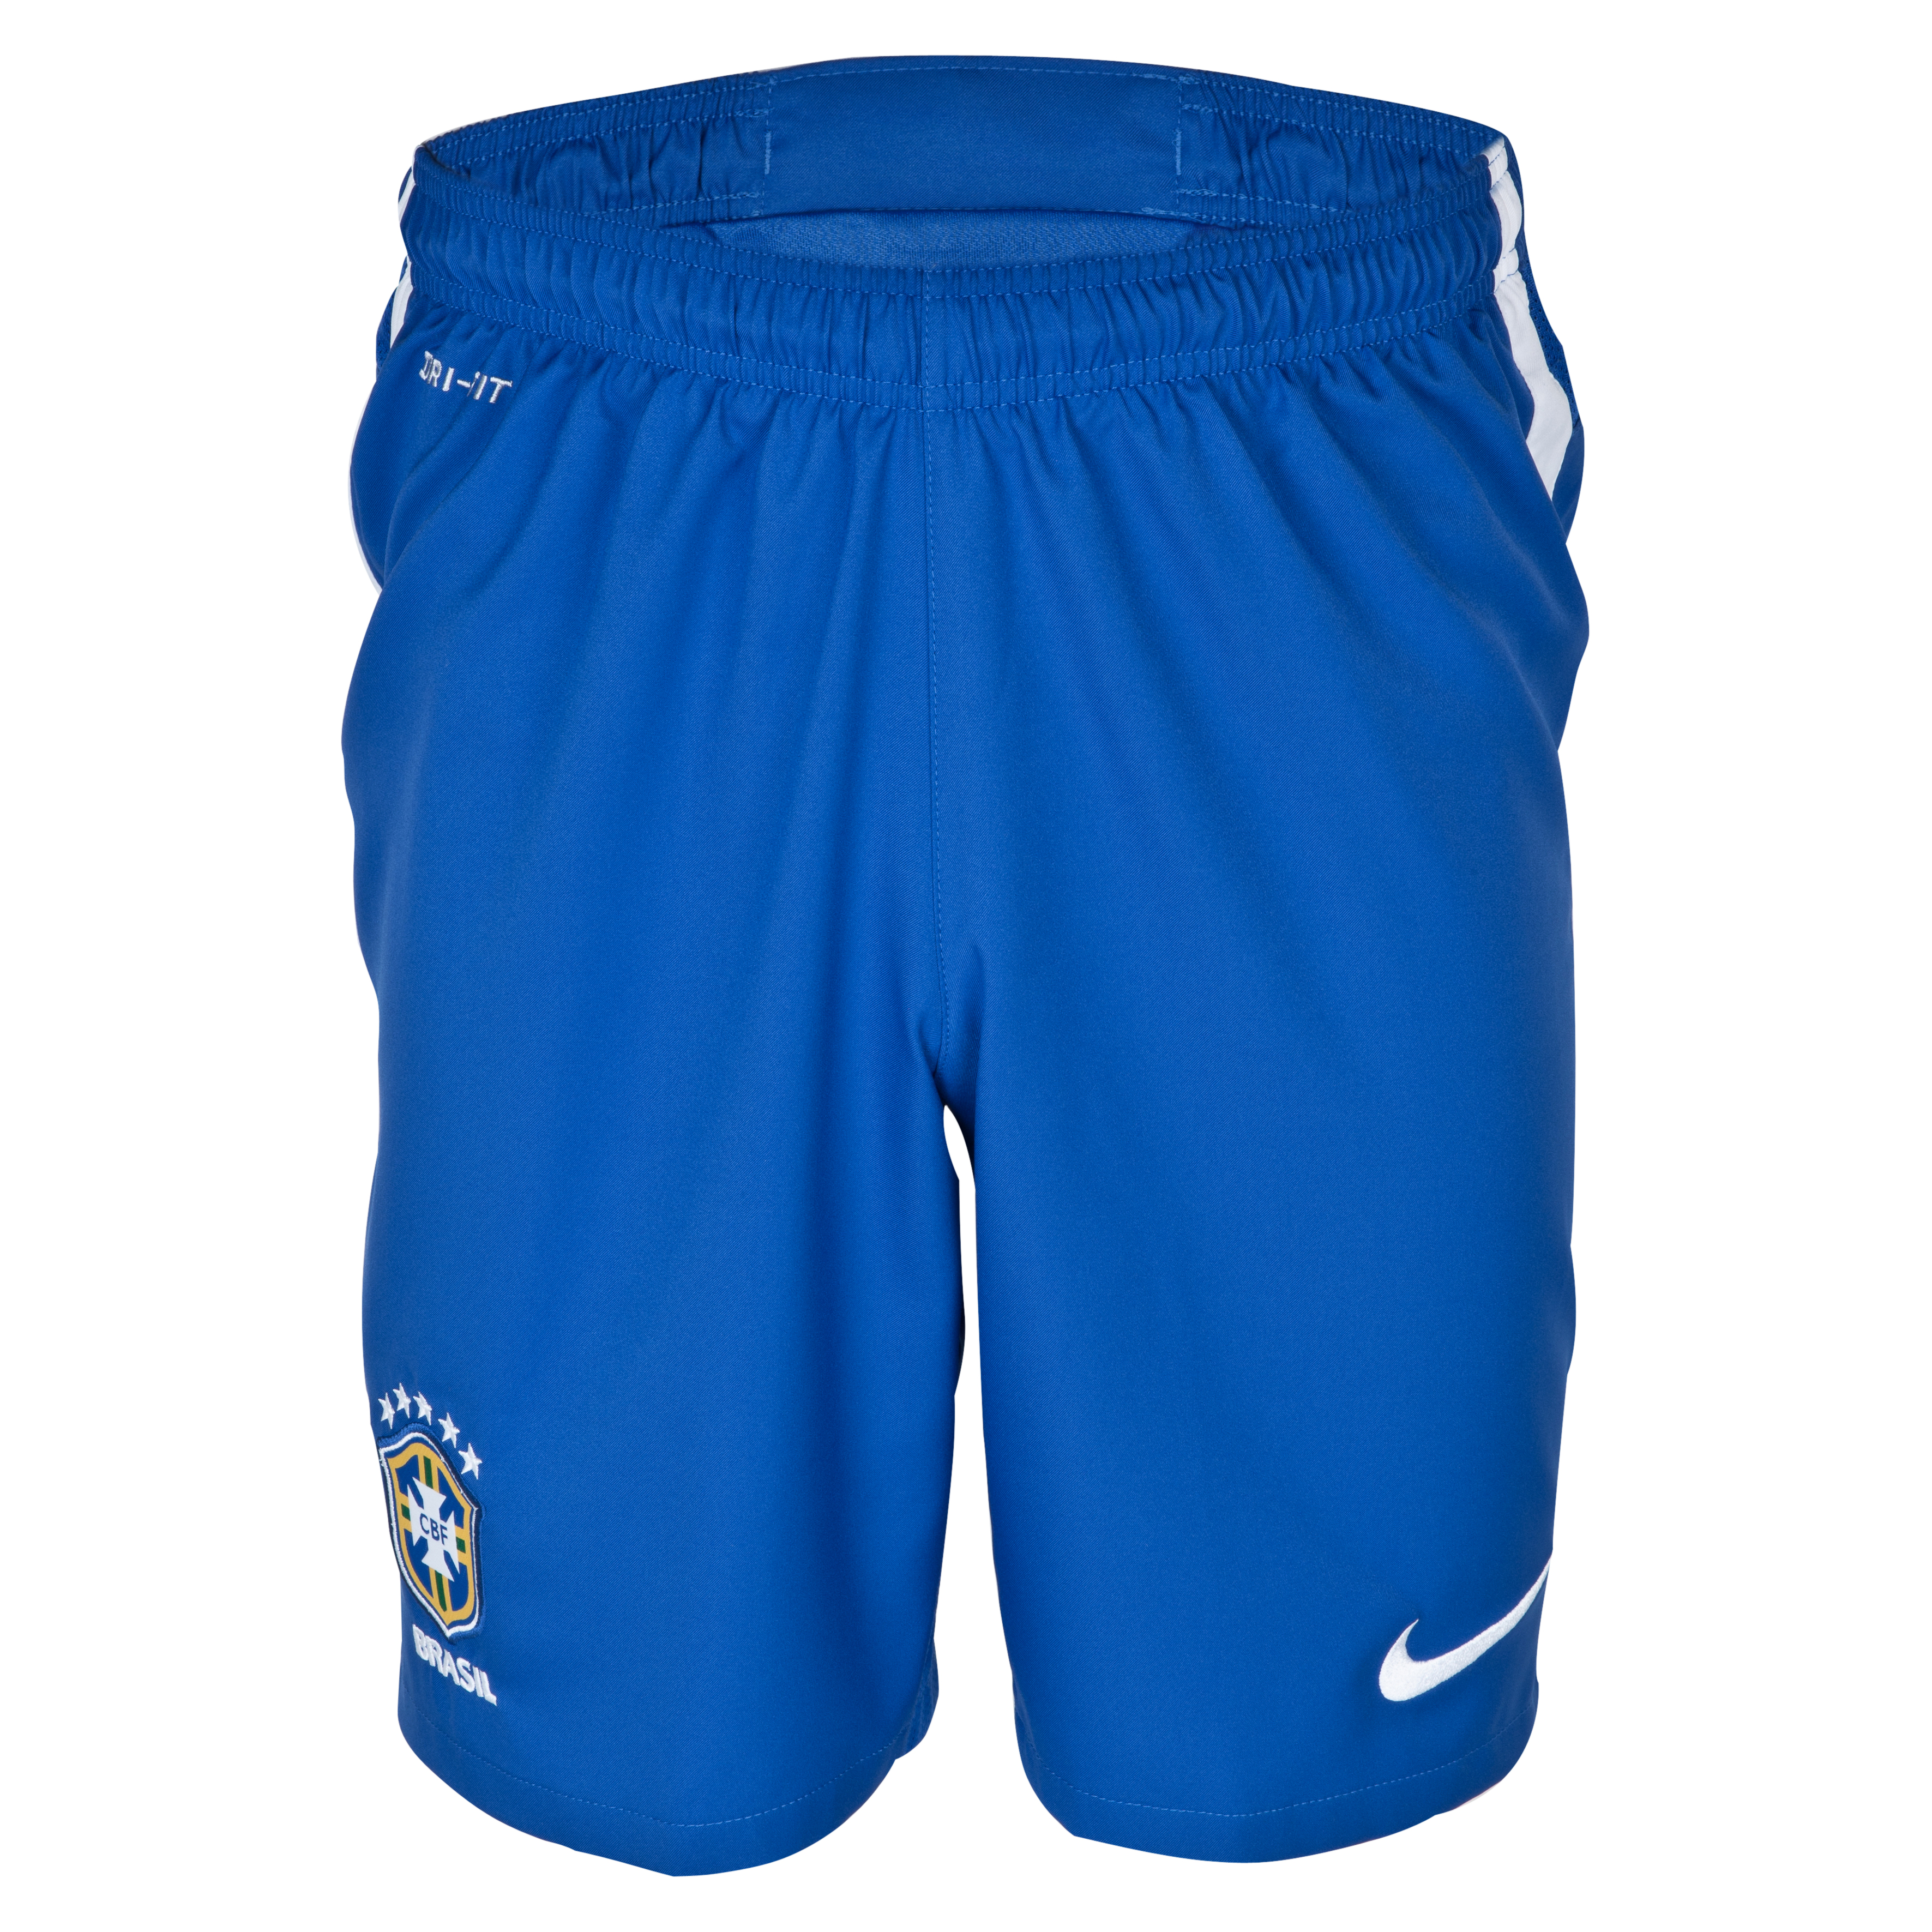 Brazil Home Short 2013/14 - Youths